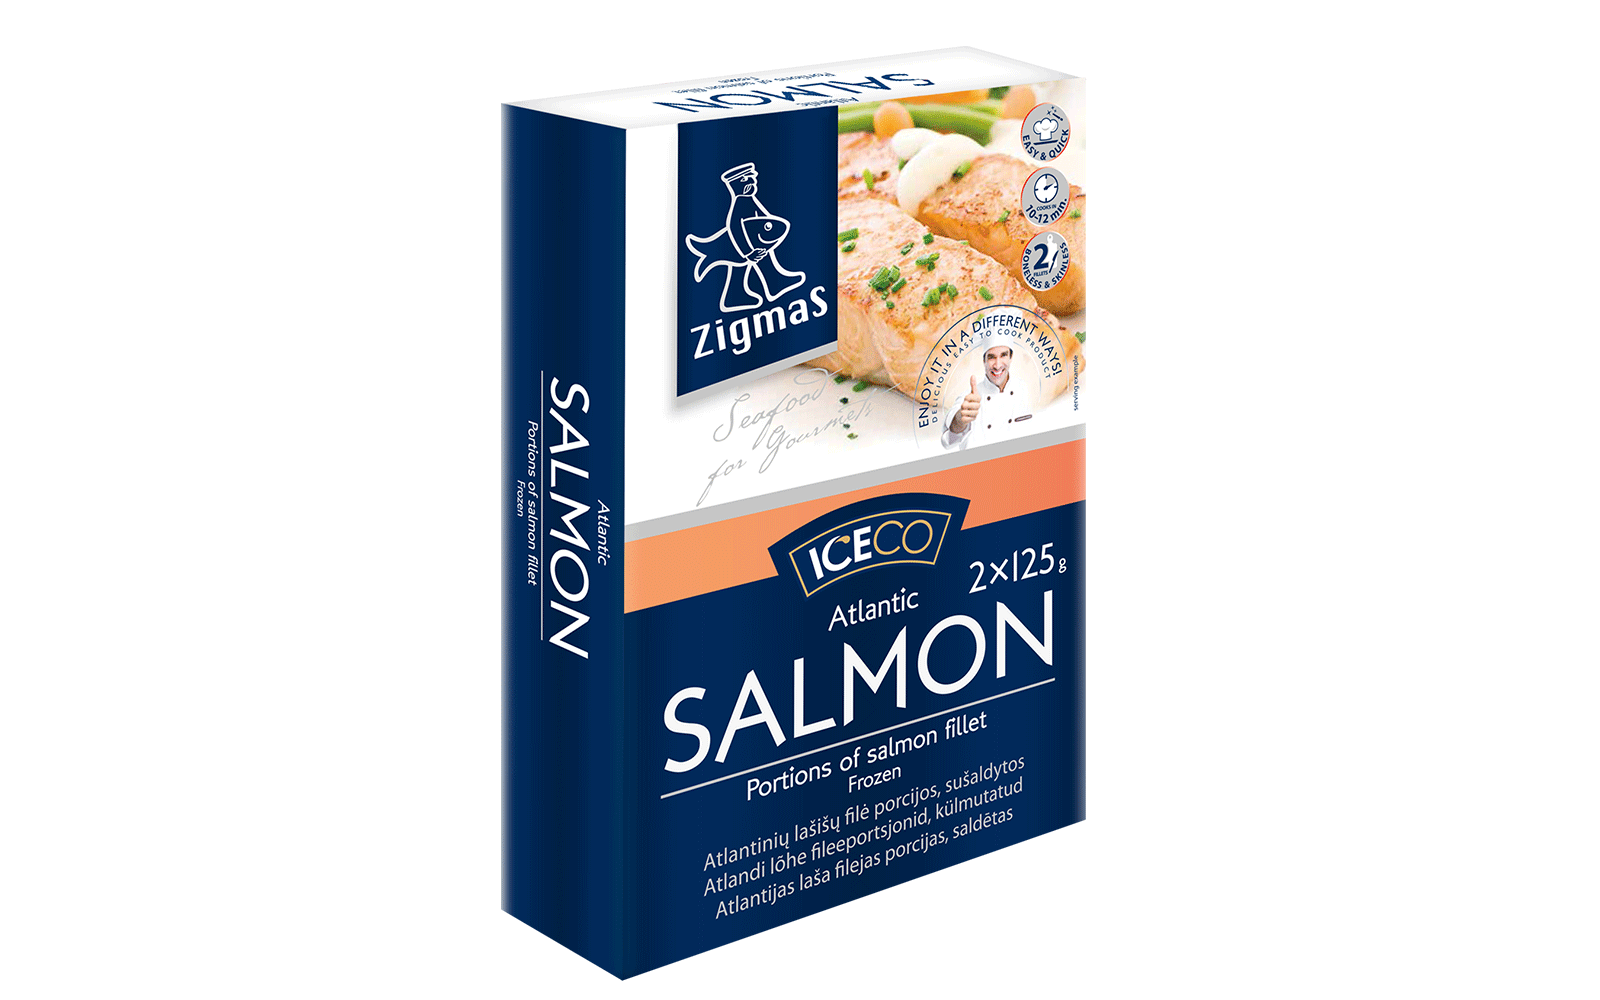 http://www.icecofish.com/wp-content/uploads/2016/06/zigmas-portions-of-atlantic-salmon-fillet-1600x1000.png